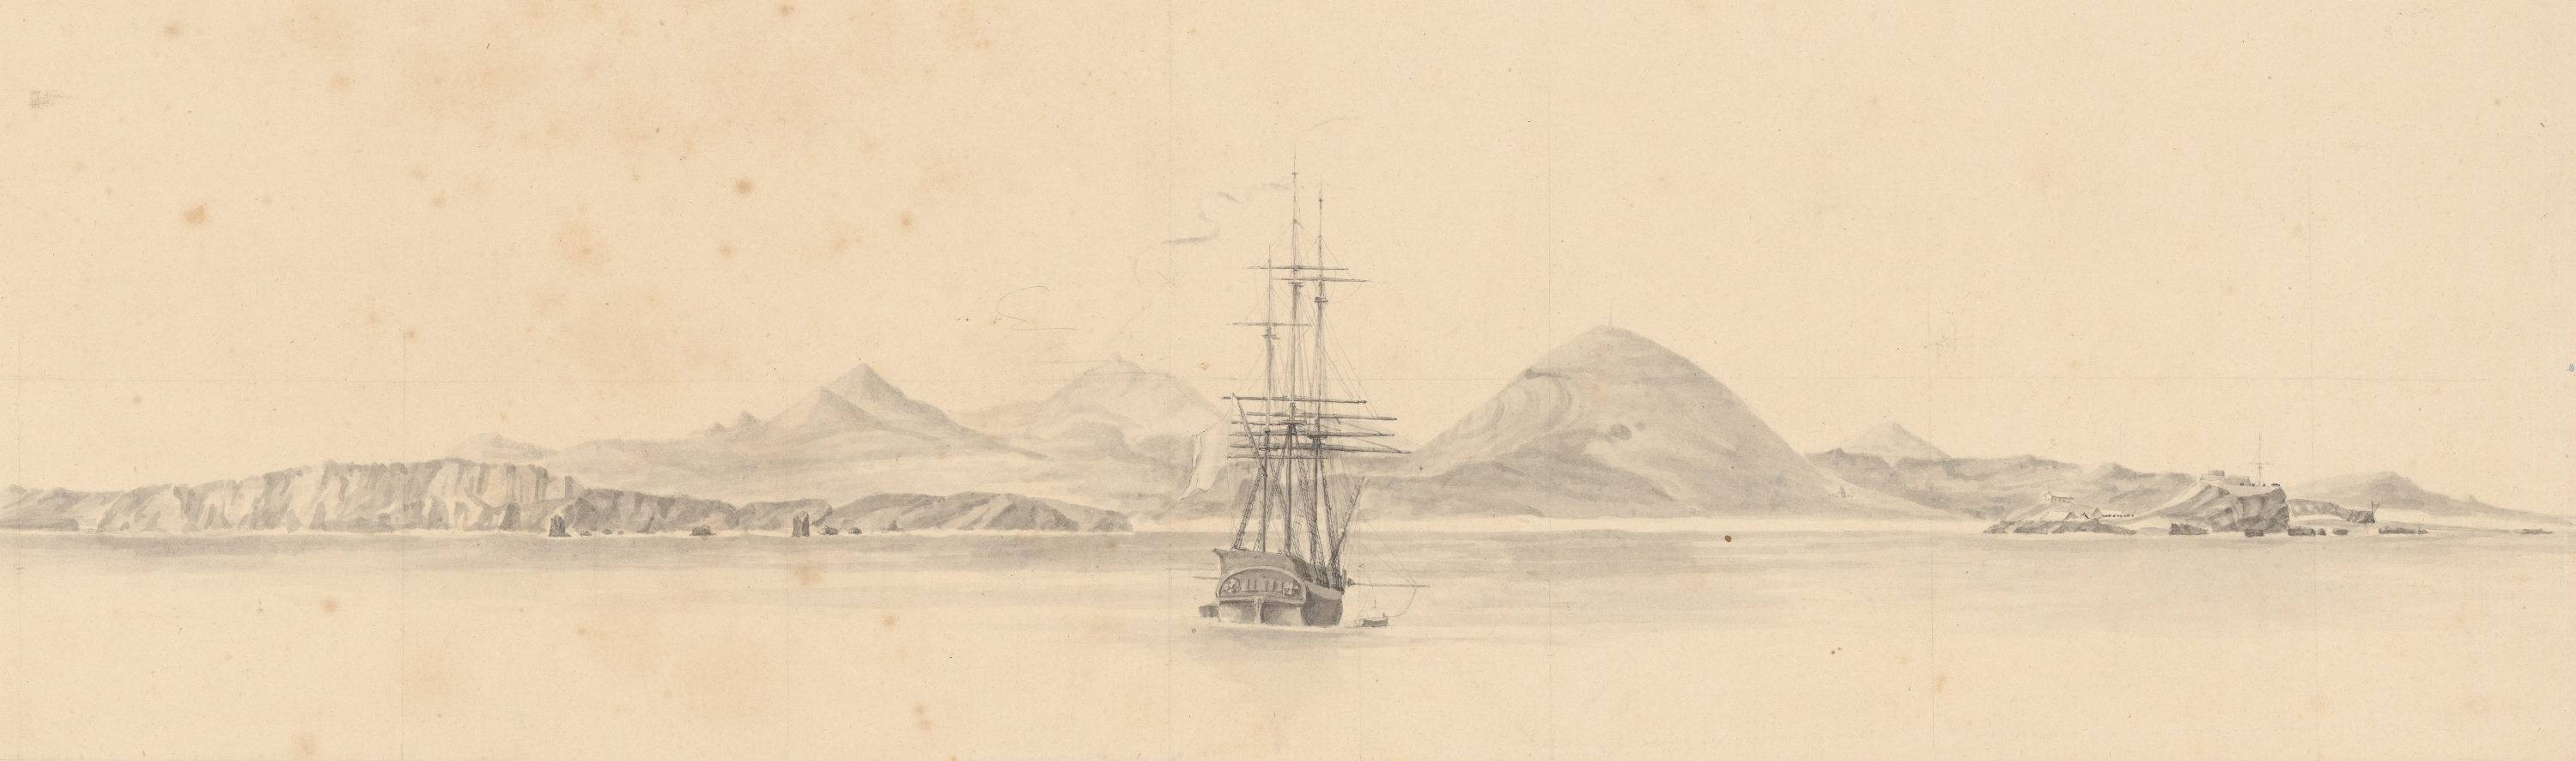 "La corvette ""La Coquille"" à l'approche de l'Ile de l'Ascension, dessin, Archives nationales, MAR/5JJ/83"